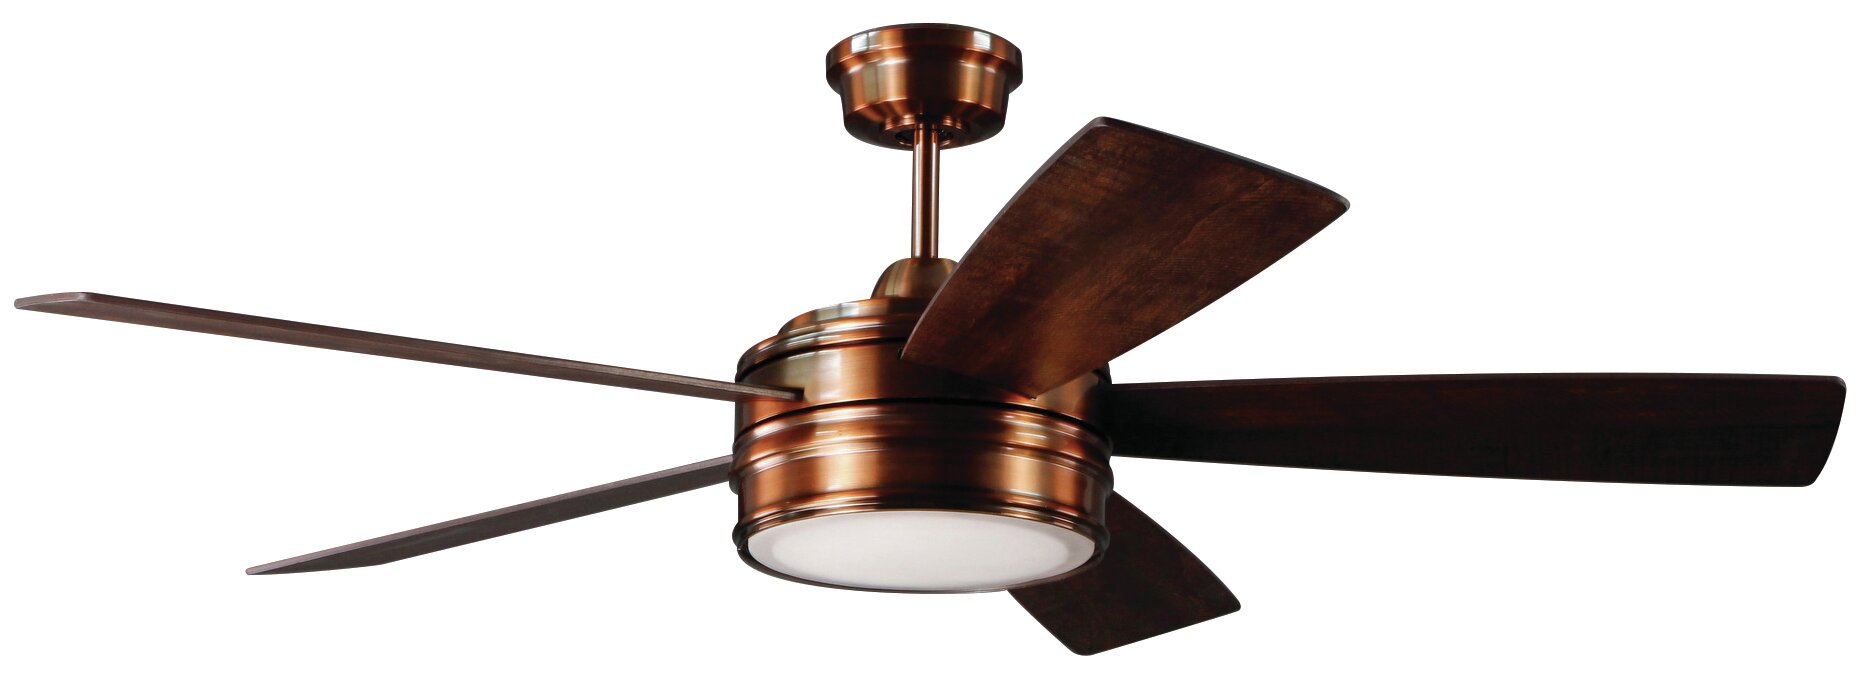 52 Quot Mathers 5 Blade Led Ceiling Fan With Remote Amp Reviews